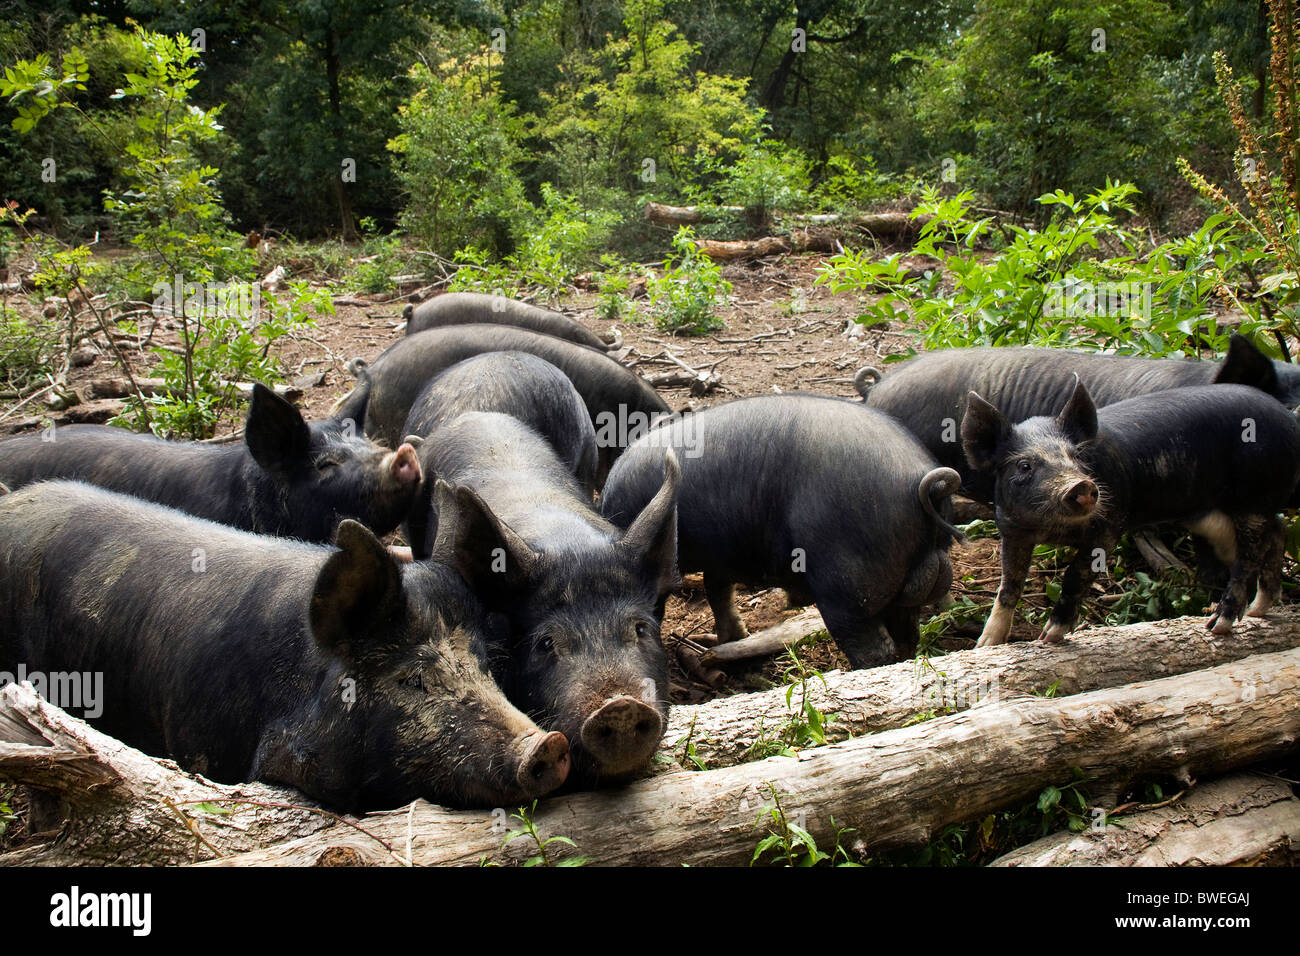 Free range Berkshire pigs and piglets foraging in woodland at Coopers Farm, Stonegate East Sussex UK - Stock Image